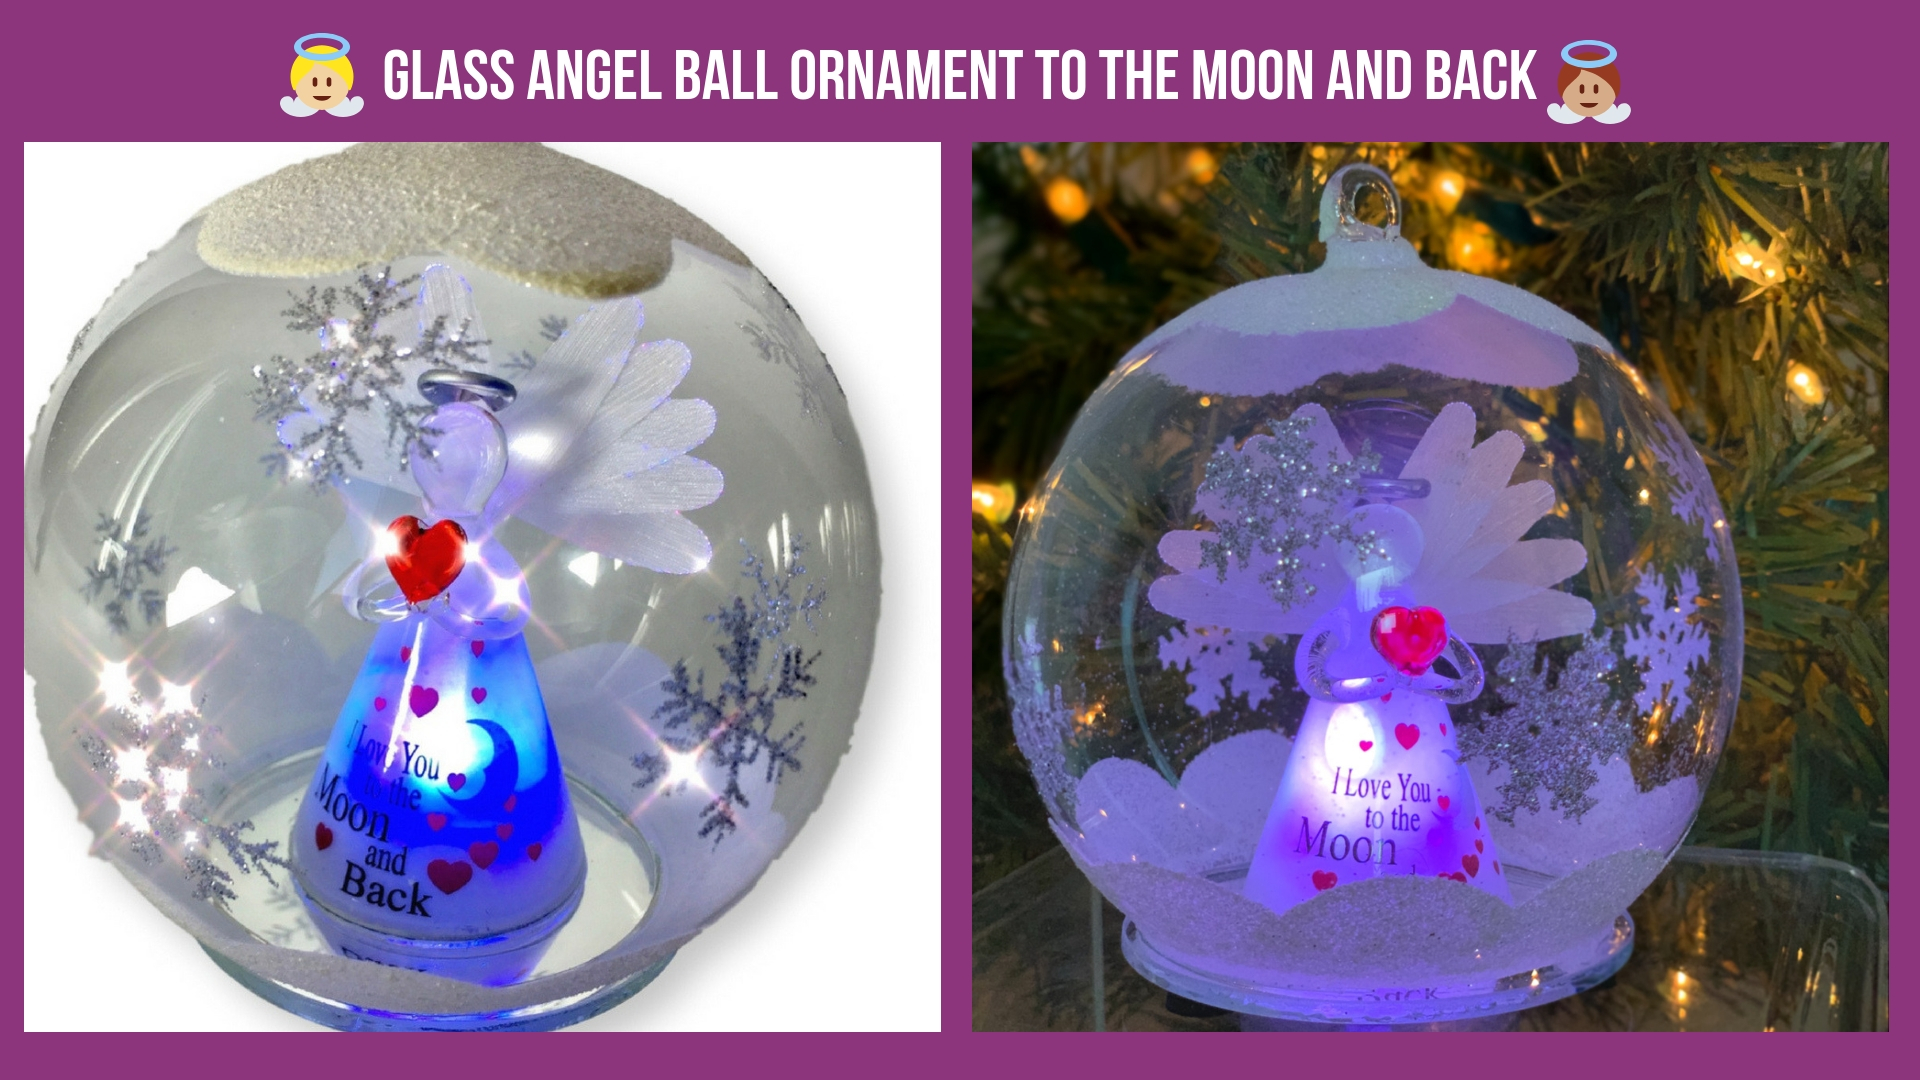 Glass Angel Ball Ornament To The Moon And Back